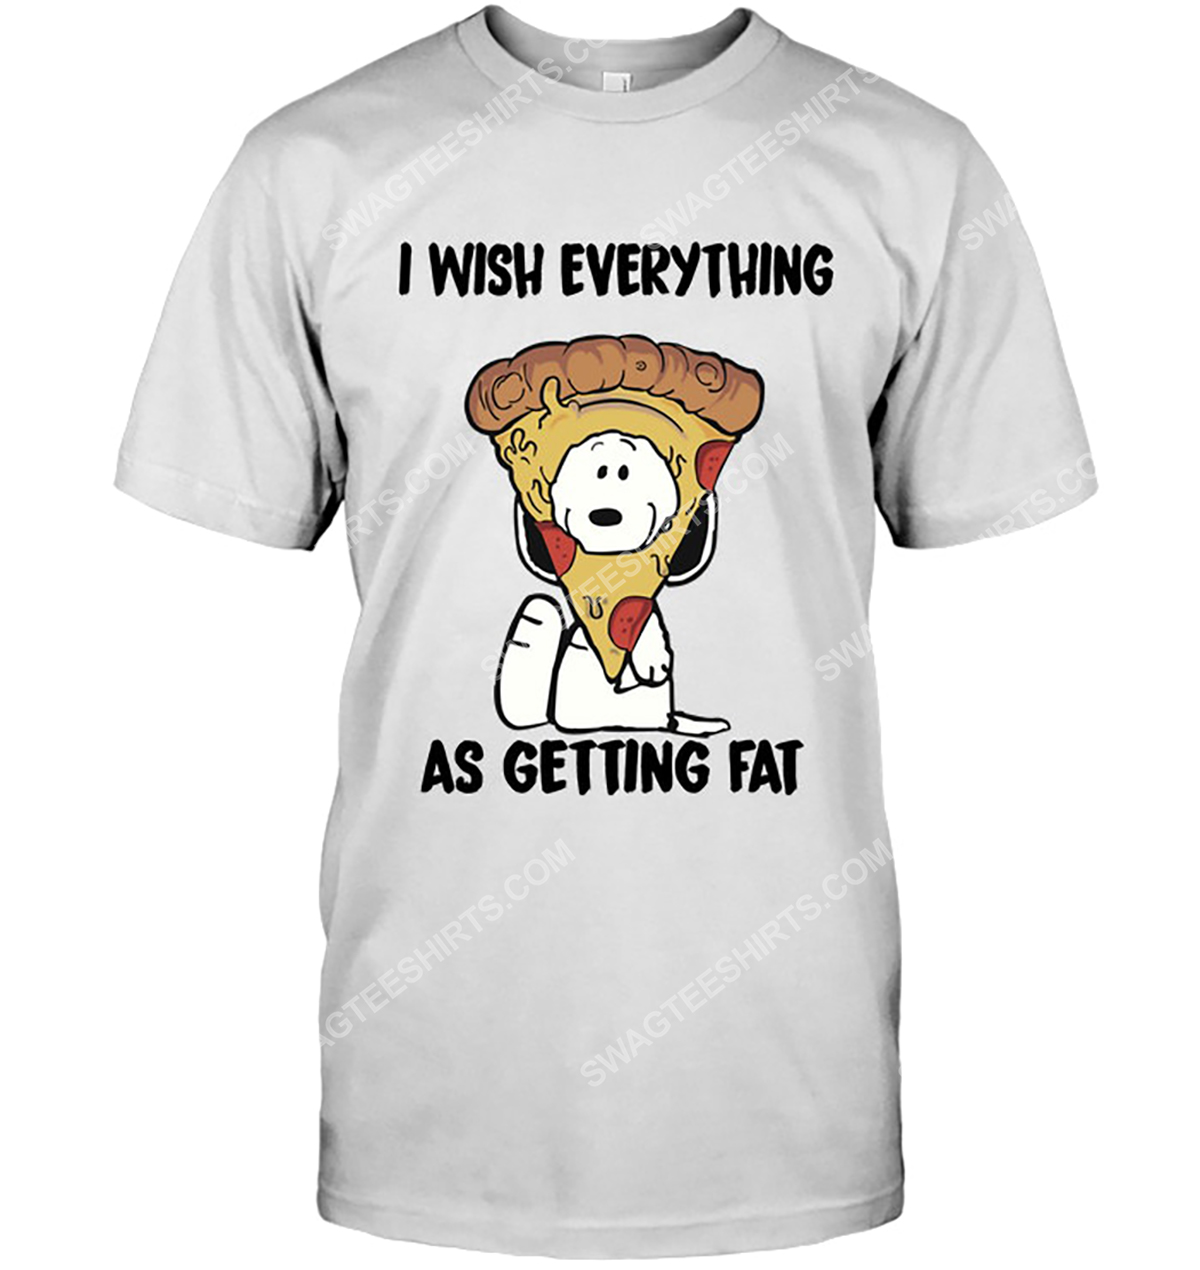 Snoopy and pizza i wish everything as getting eat tshirt 1